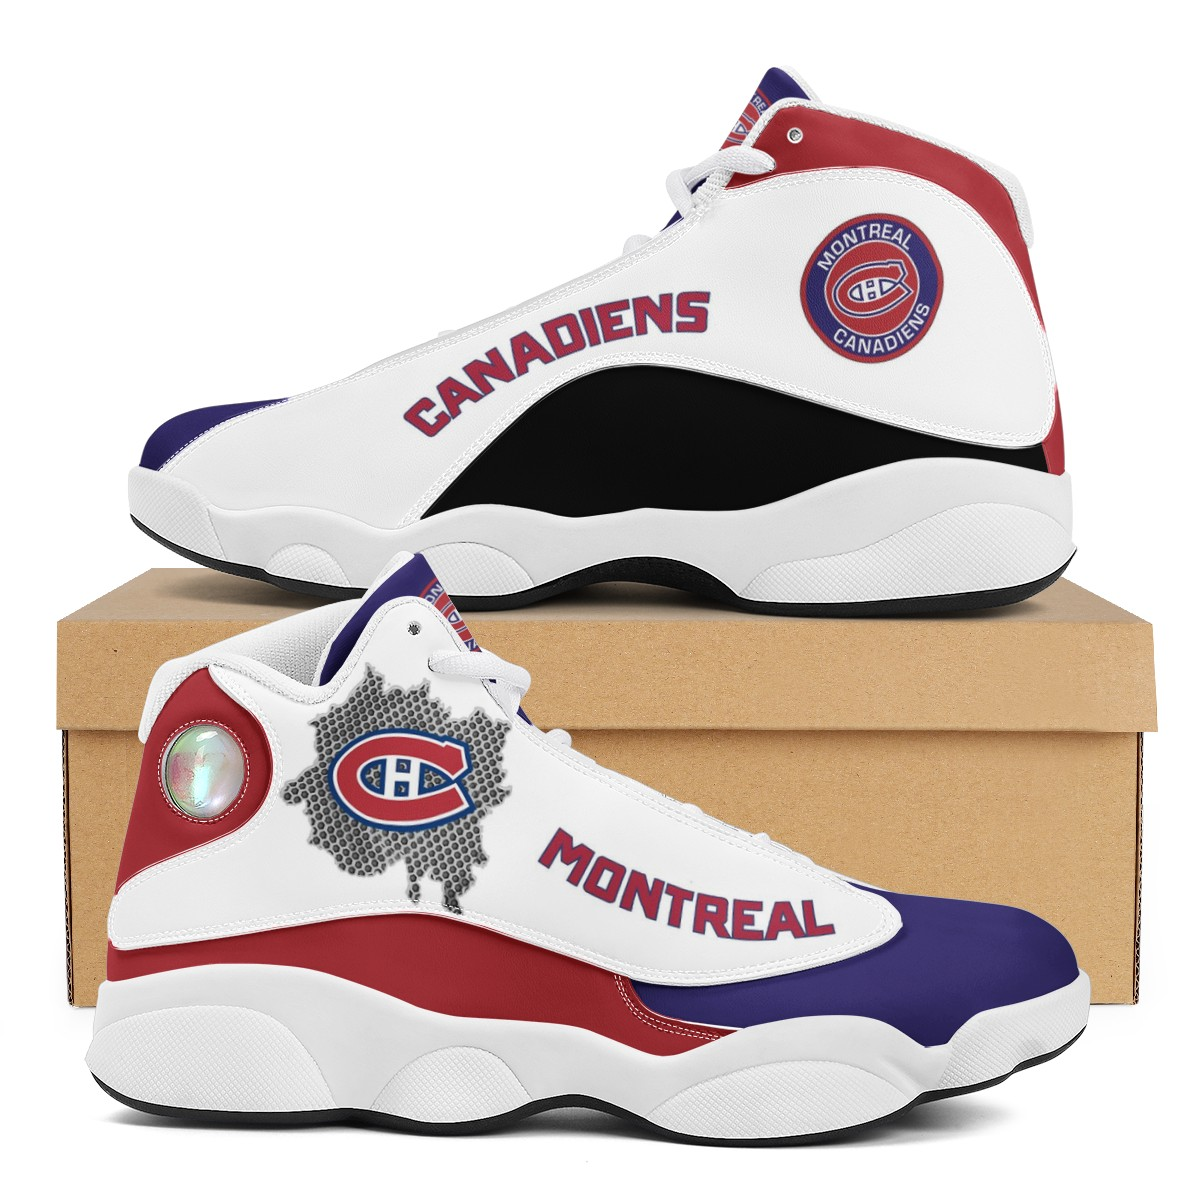 Men's Montreal Canadiens Limited Edition JD13 Sneakers 002